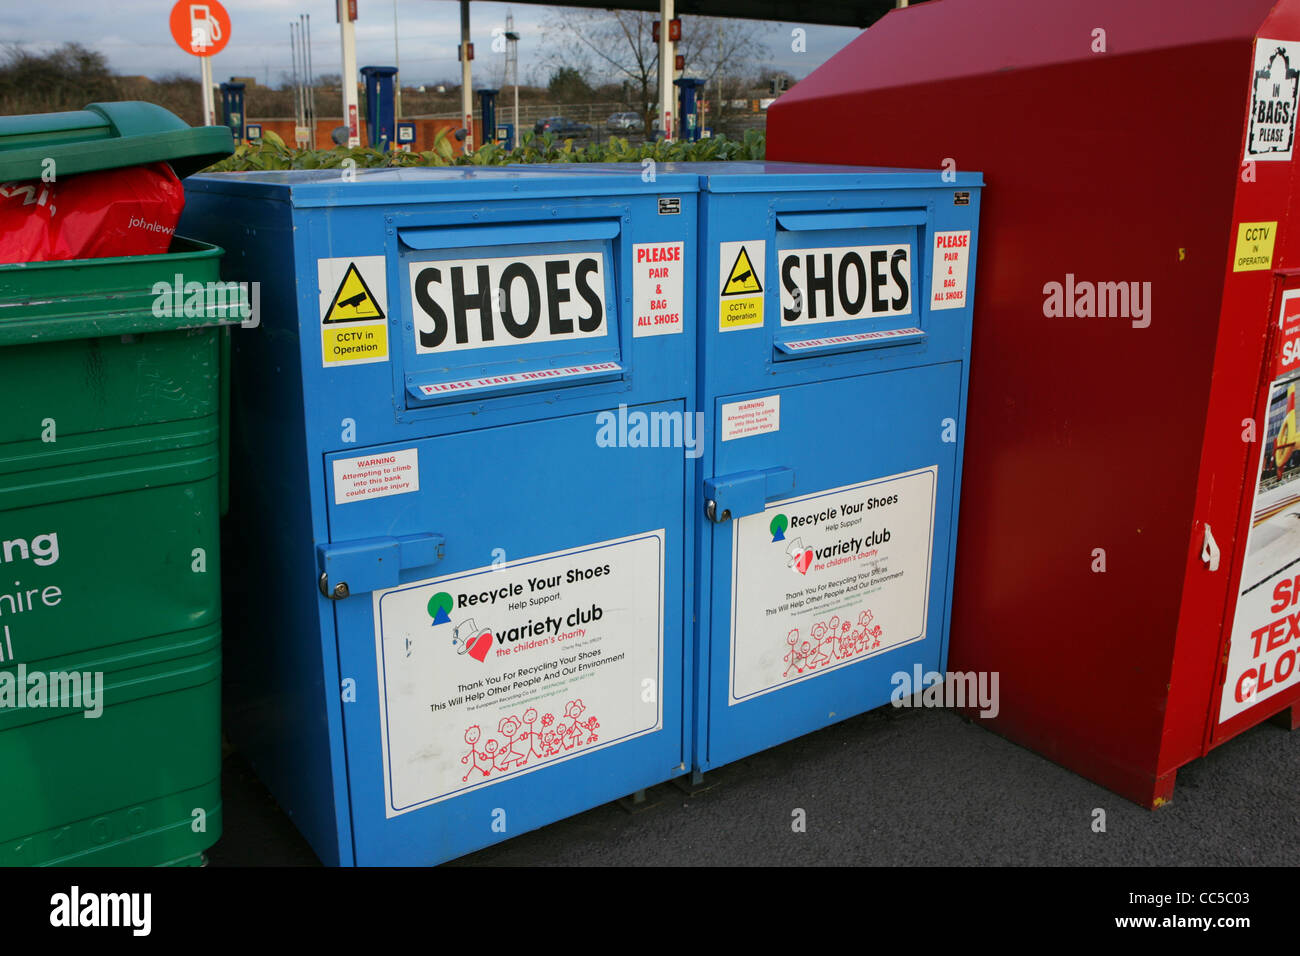 shoe recycling boxes at didcot sainsburys - Stock Image